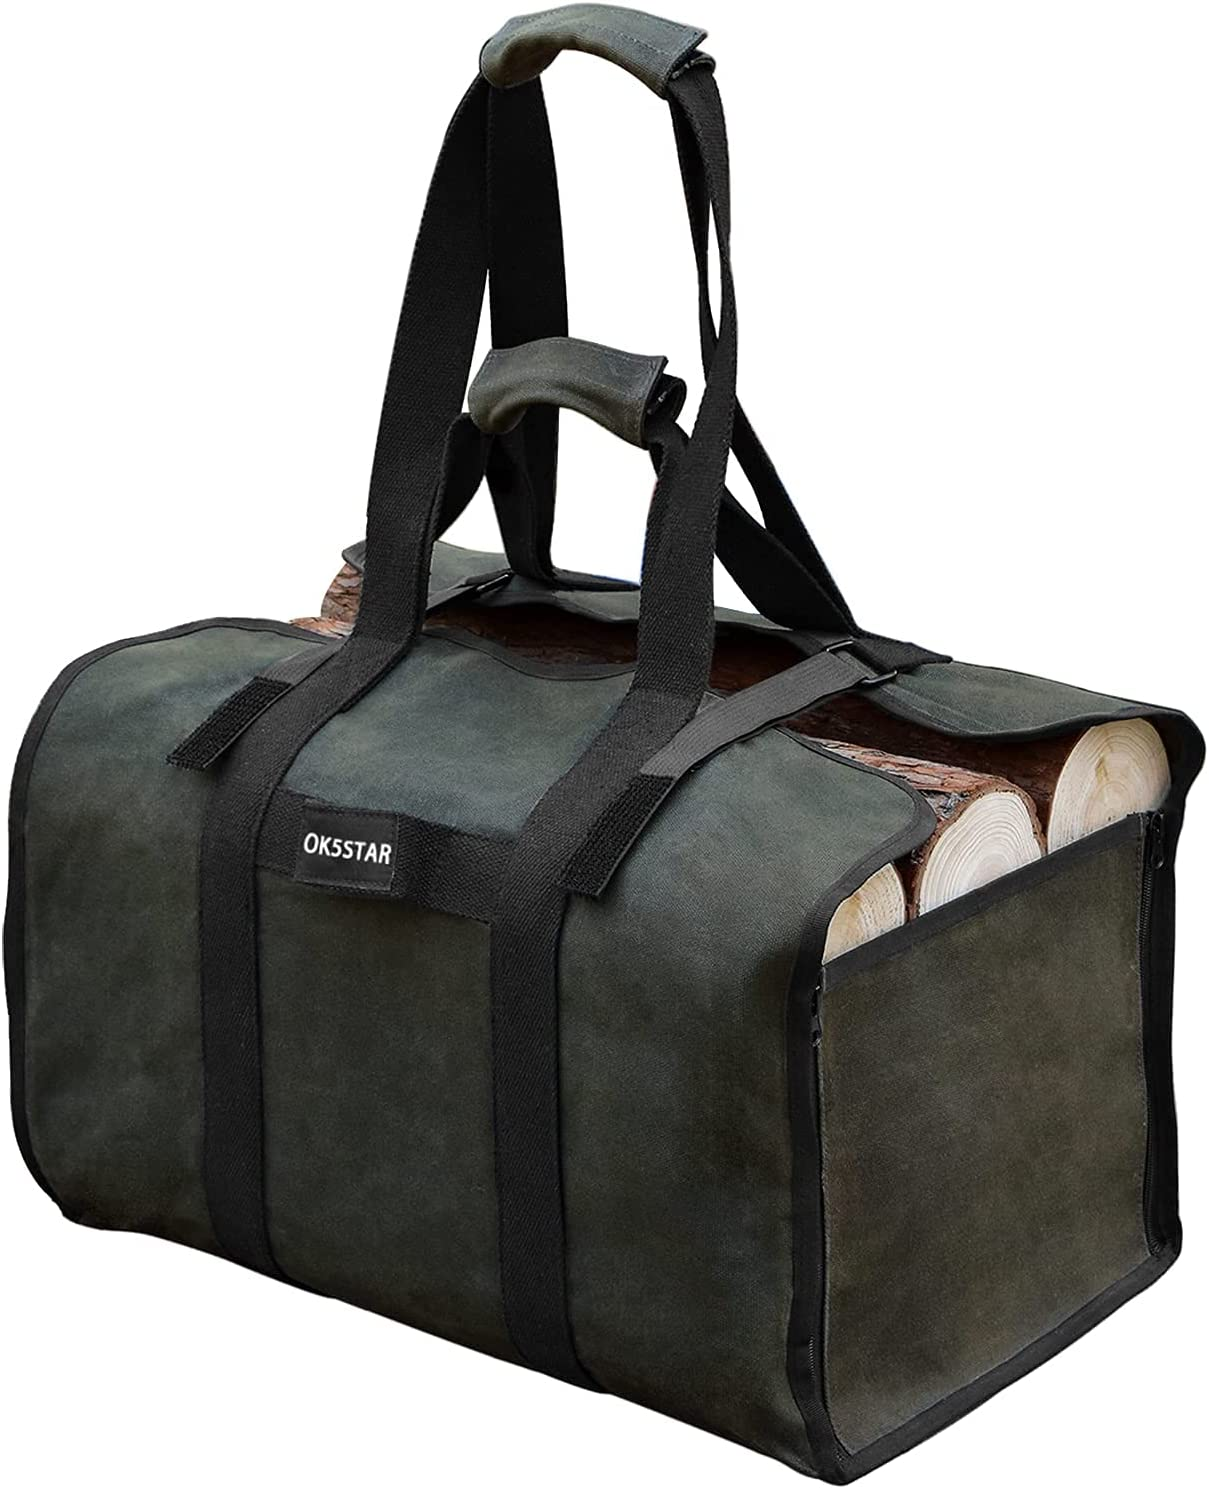 low-pricing OK5STAR Black Large Firewood Carrier Waxed I Tote Log Canvas High order Bag